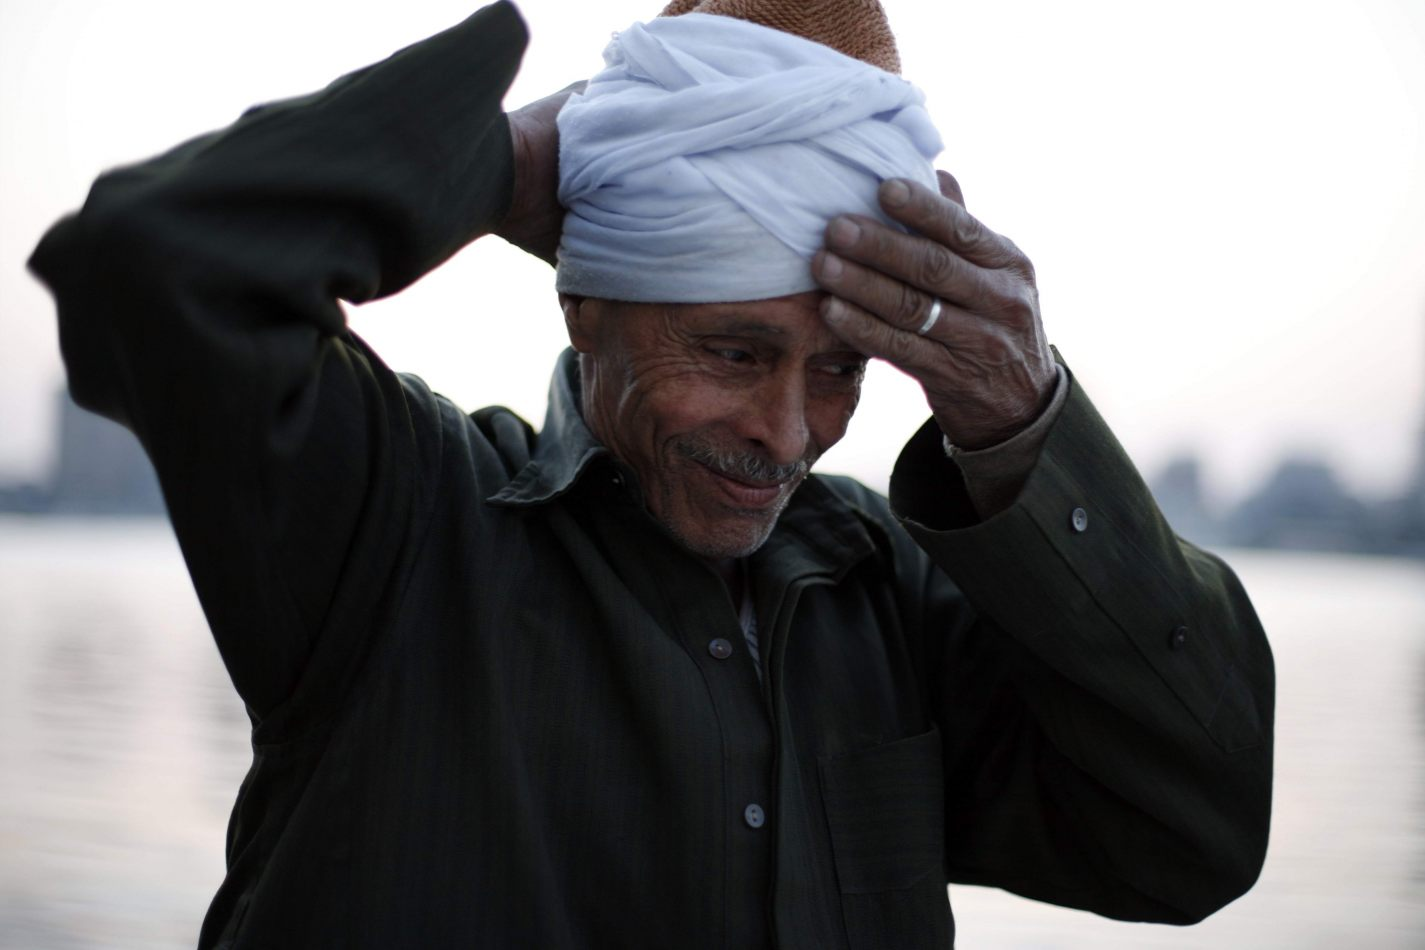 Anthony Ellis Photography: Submit to the Will - Mahmoud Shifts his Turban